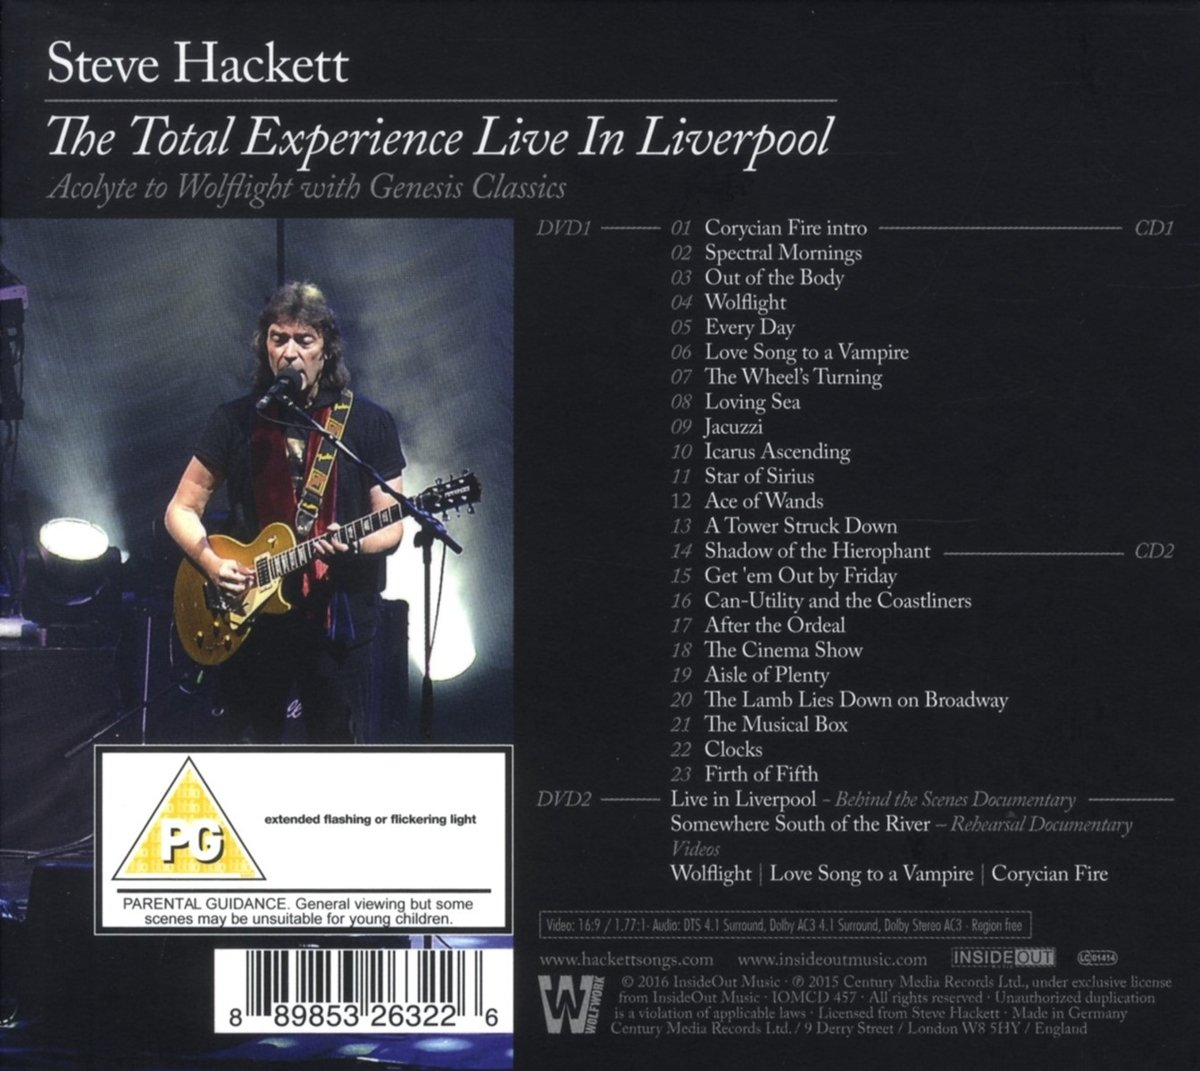 Steve hackett the total experience live in liverpool amazon steve hackett the total experience live in liverpool amazon music m4hsunfo